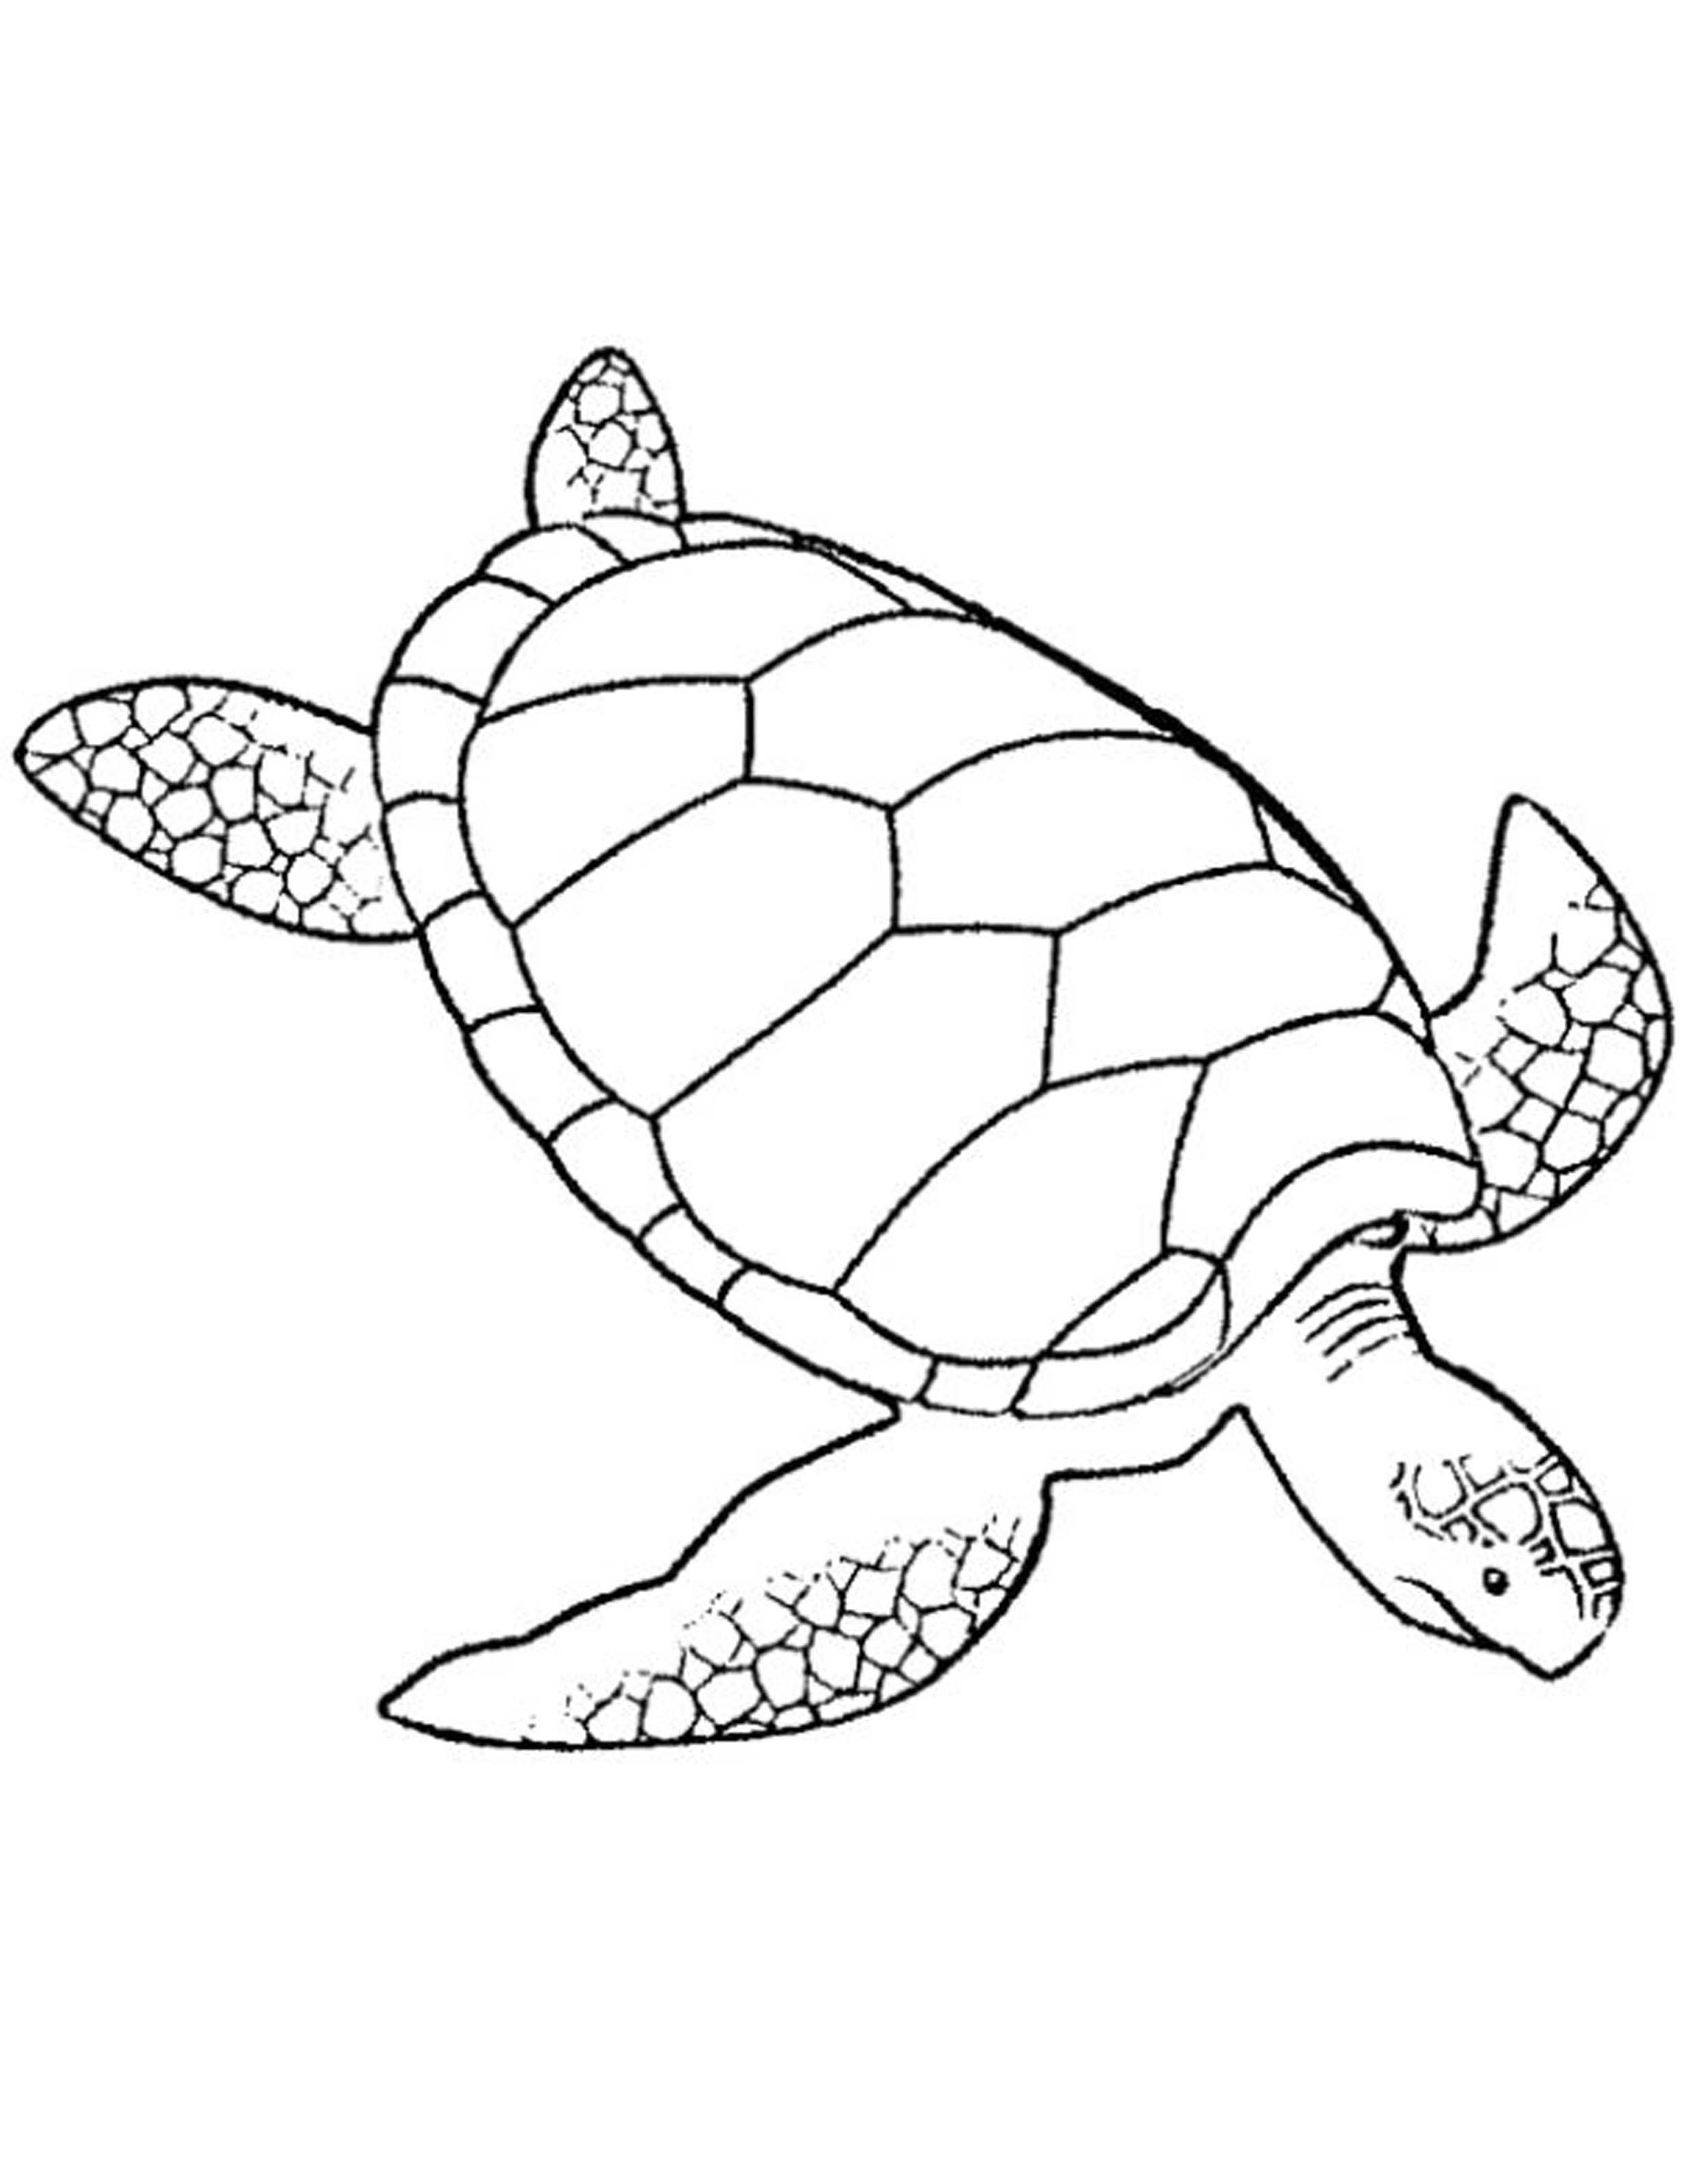 turtle pictures to print print download turtle coloring pages as the turtle pictures to print